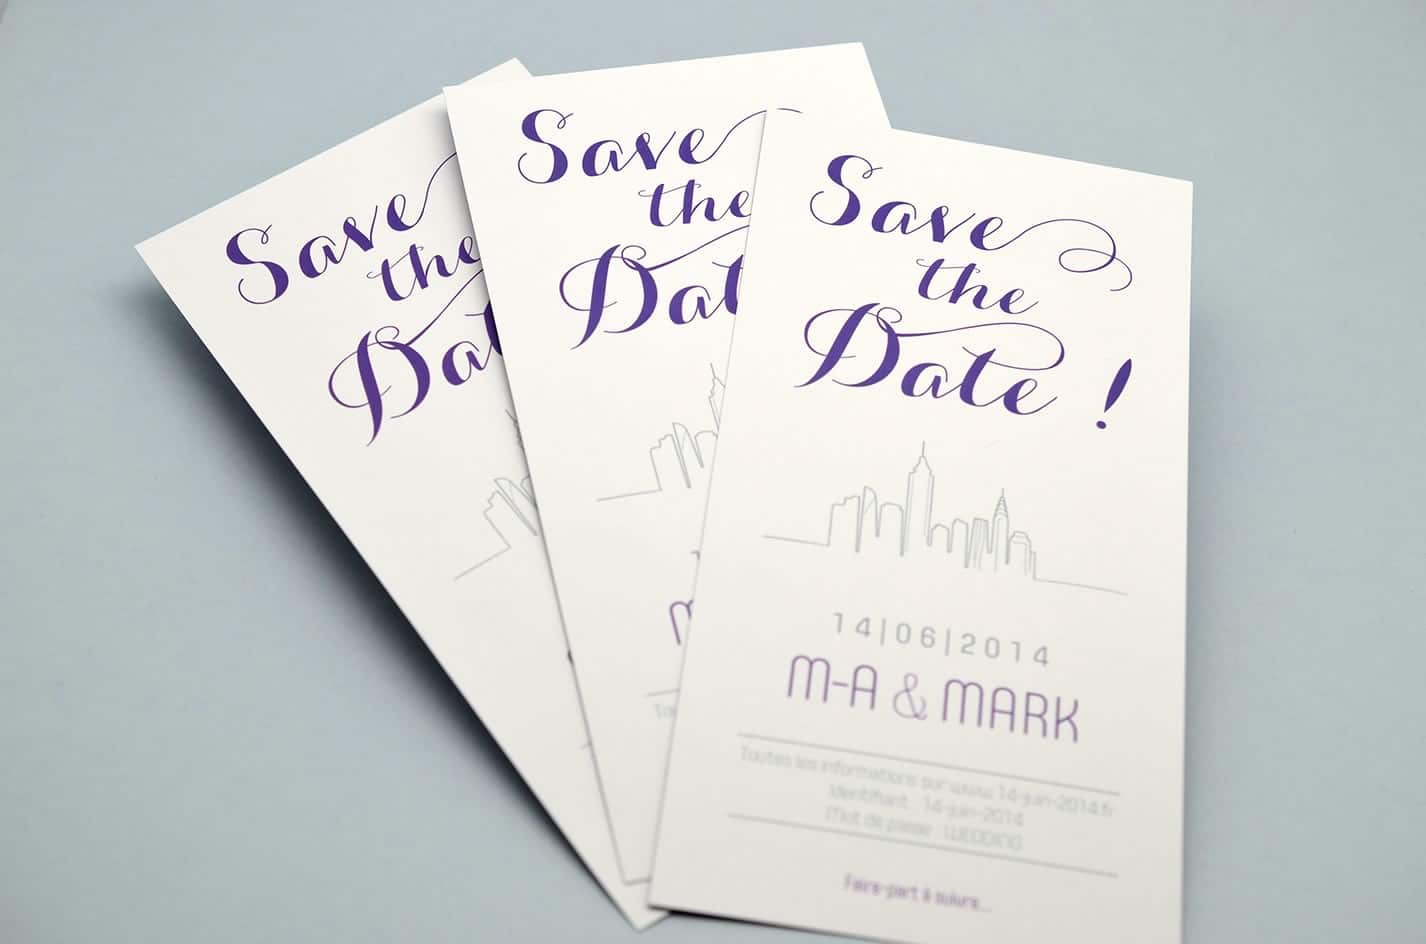 Save the date new york design violet skyline mariage sur mesure latelierdelsa